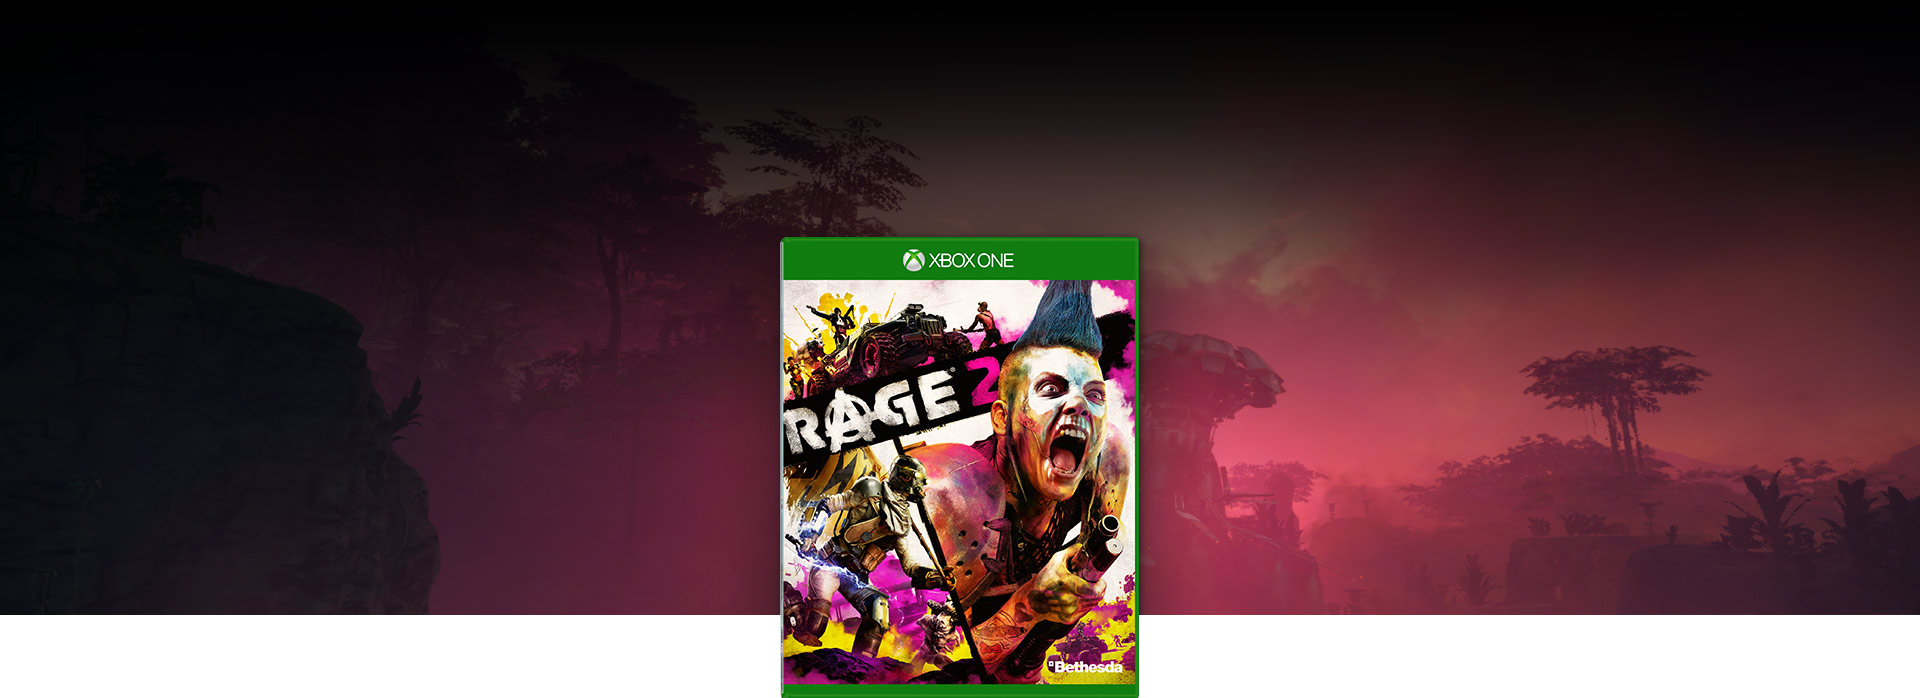 Rage 2 boxshot, Background of a lush jungle